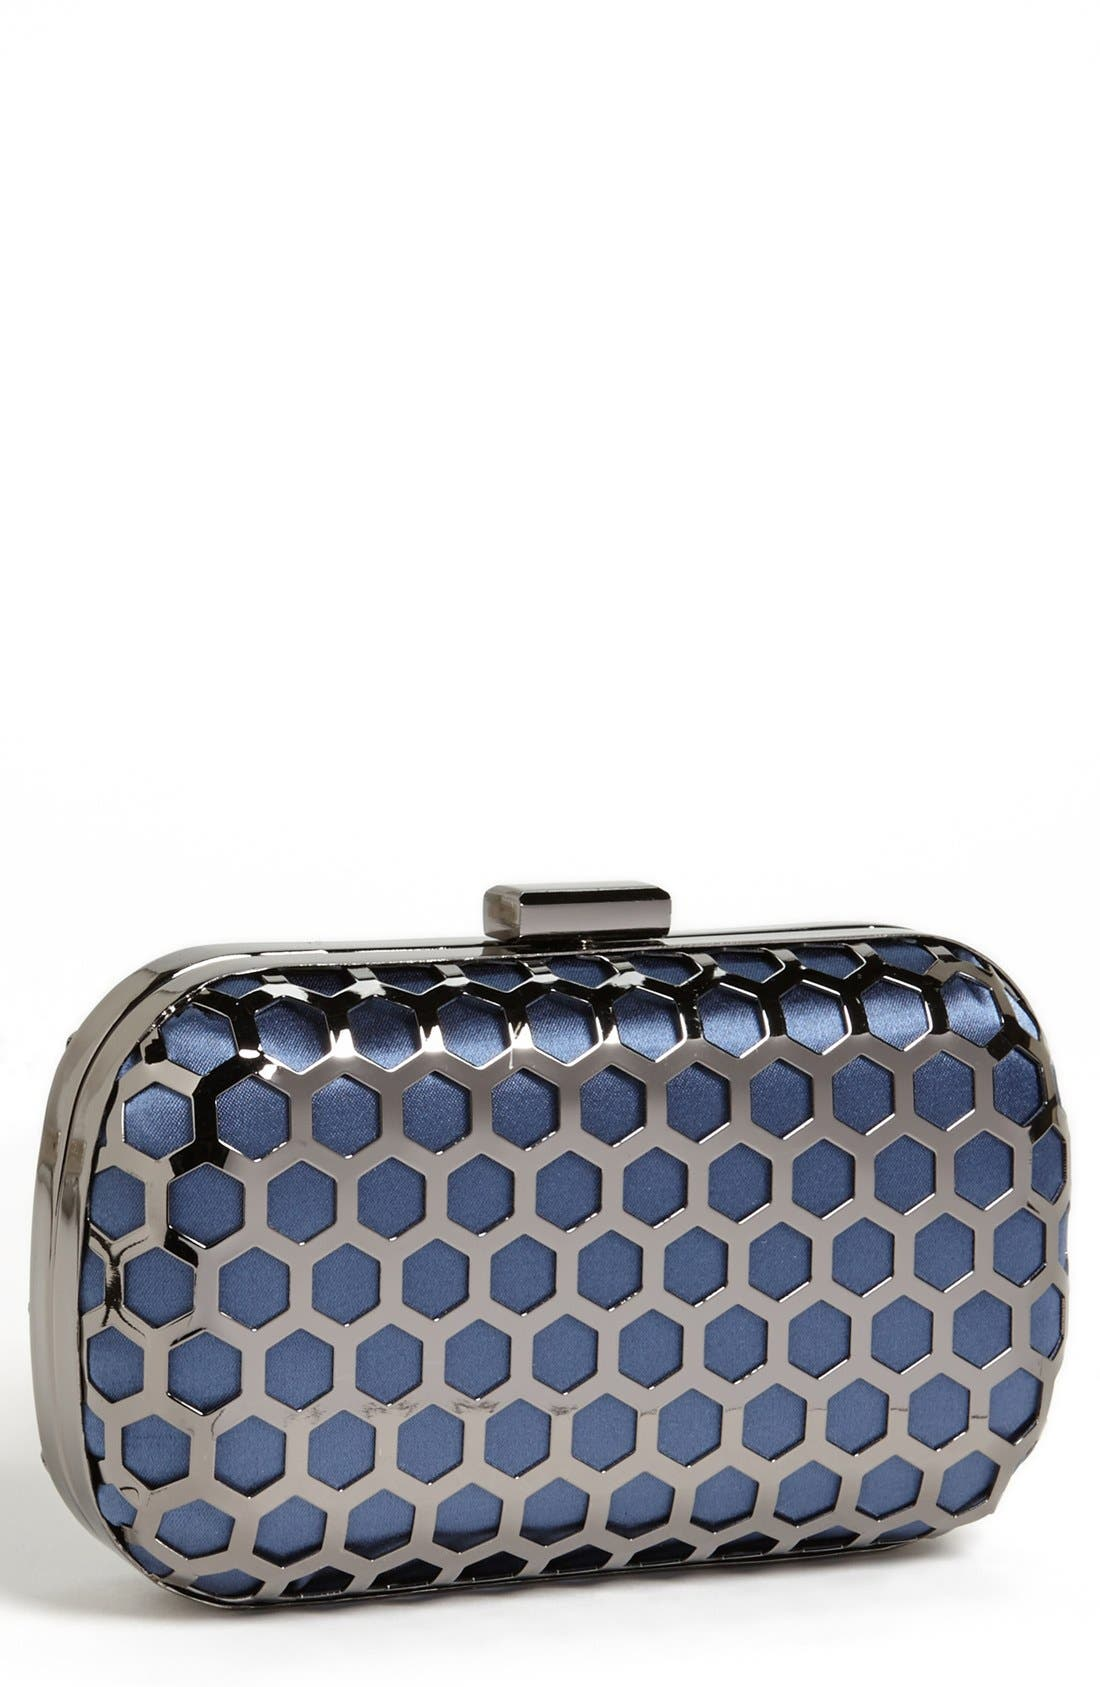 Main Image - Expressions NYC Hexagonal Box Clutch